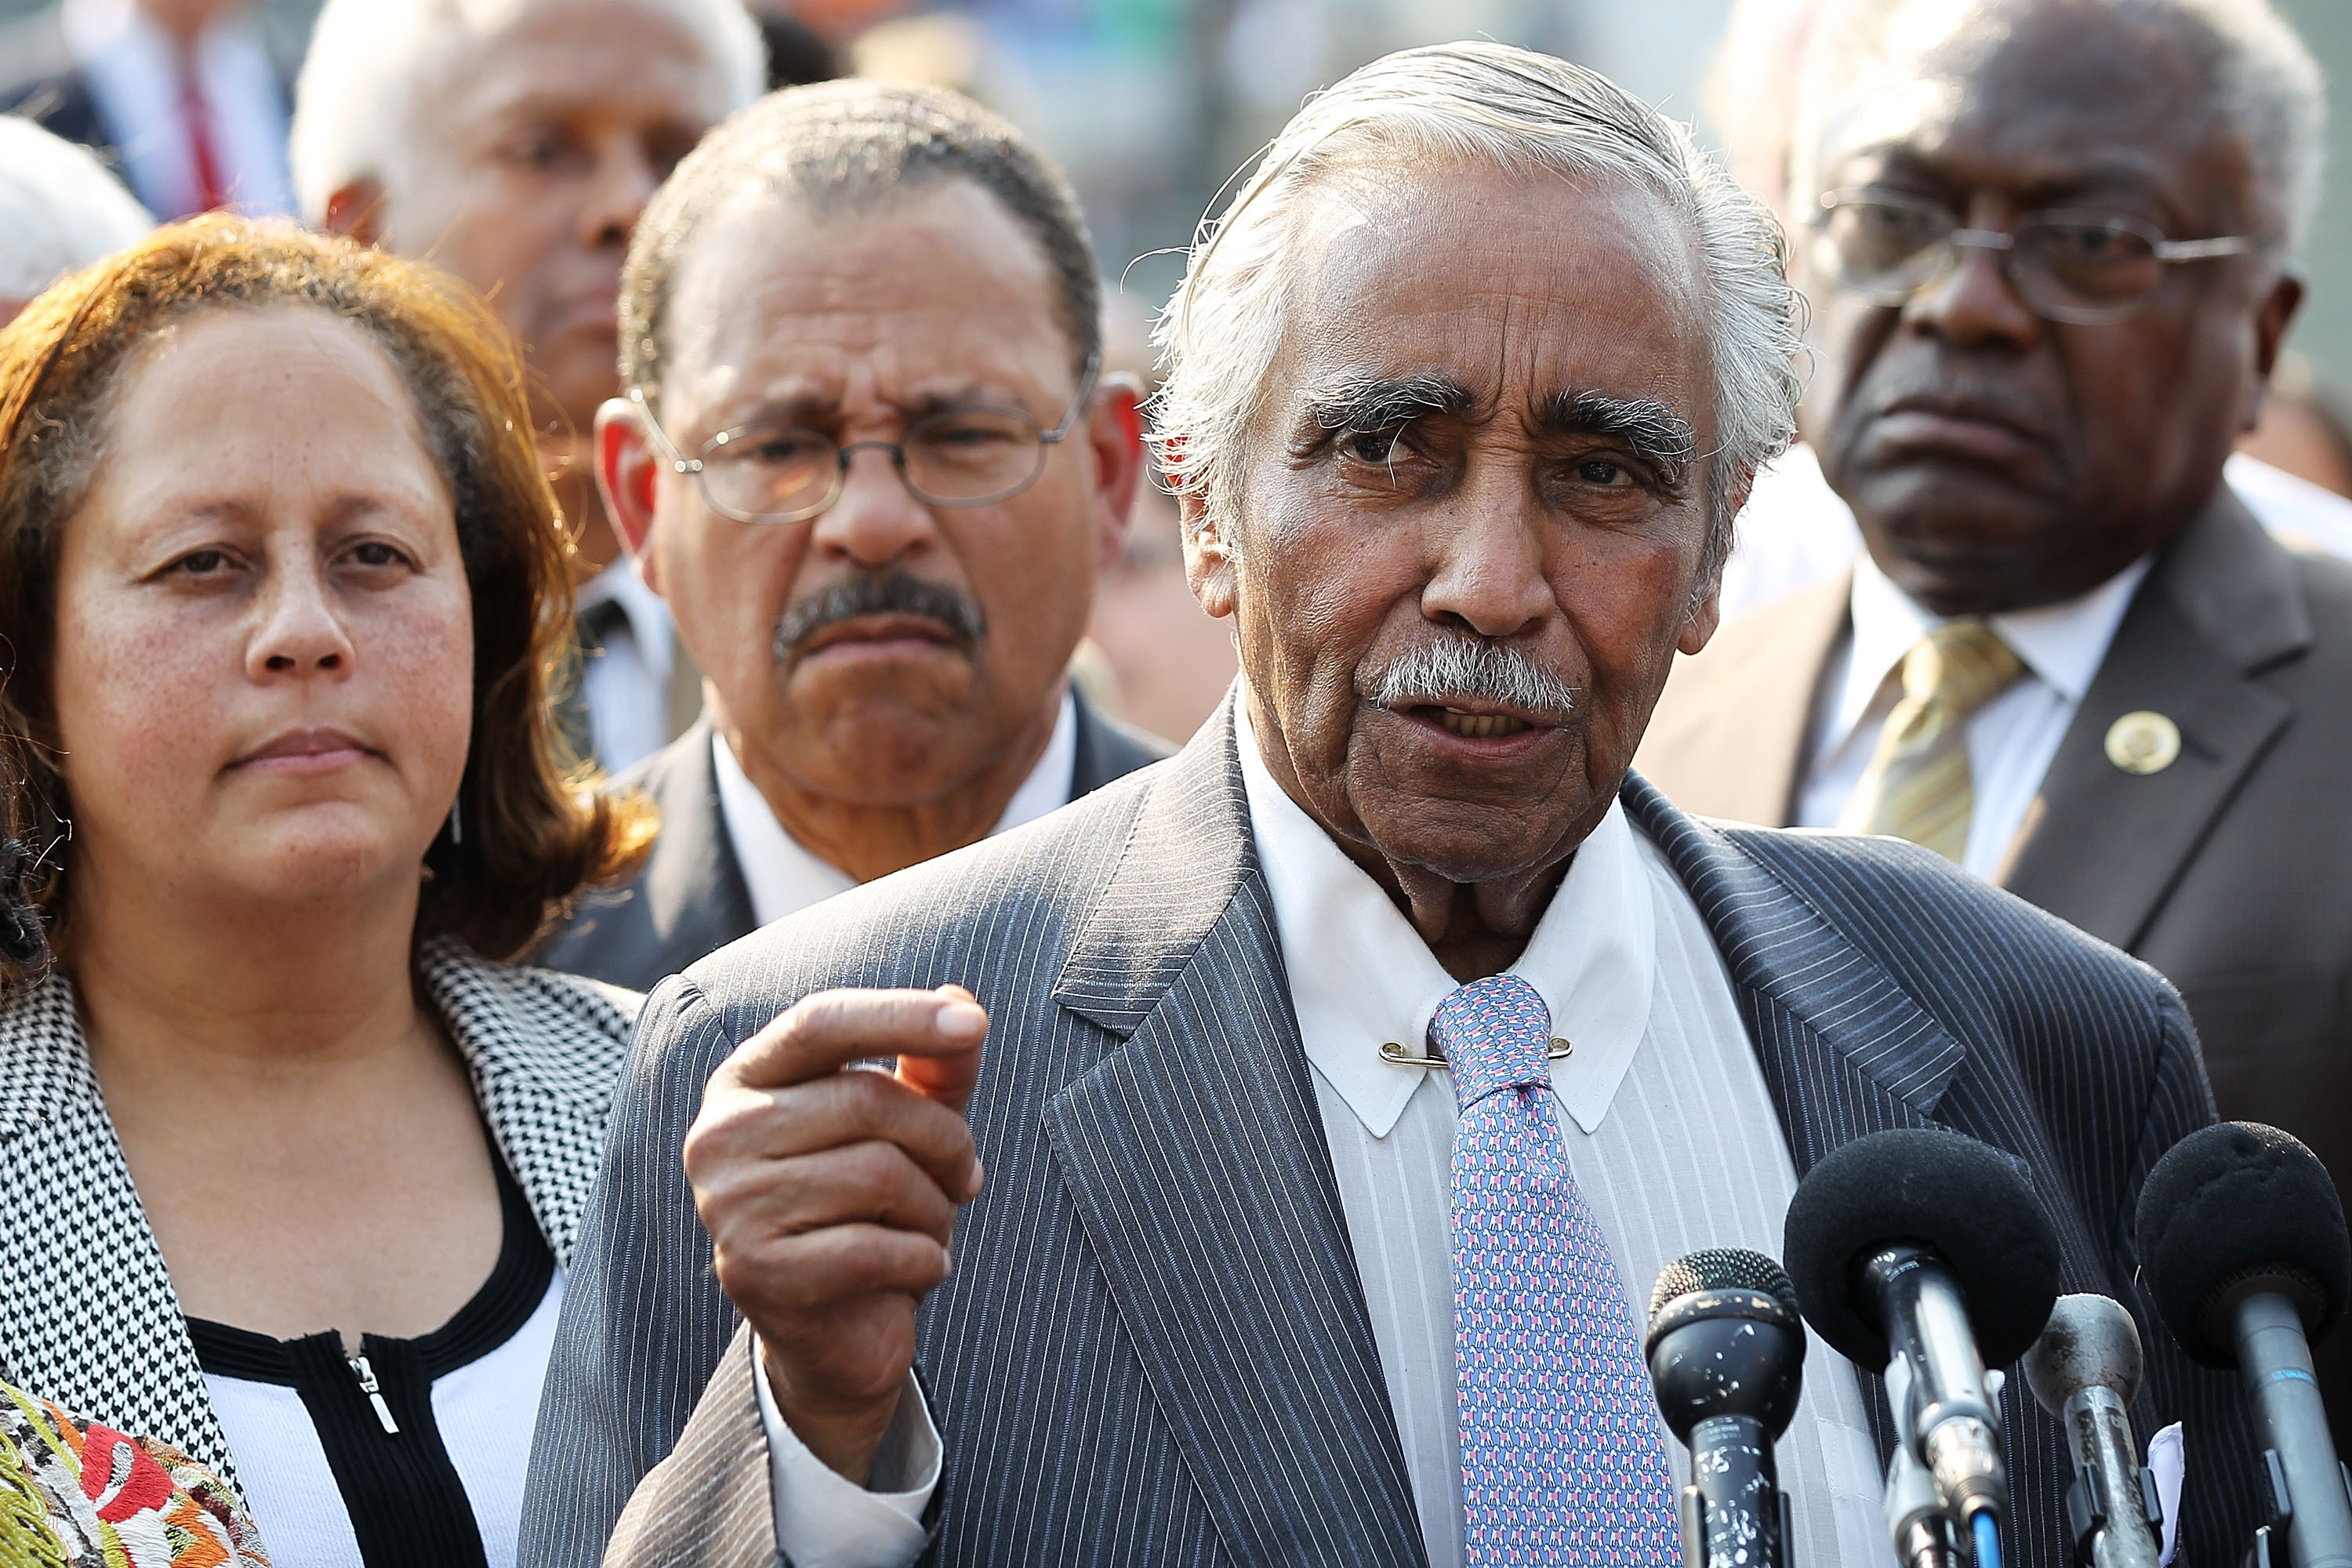 IN: New York Democratic Rep. Charles Rangel speaks during a news conference in Washington in June.